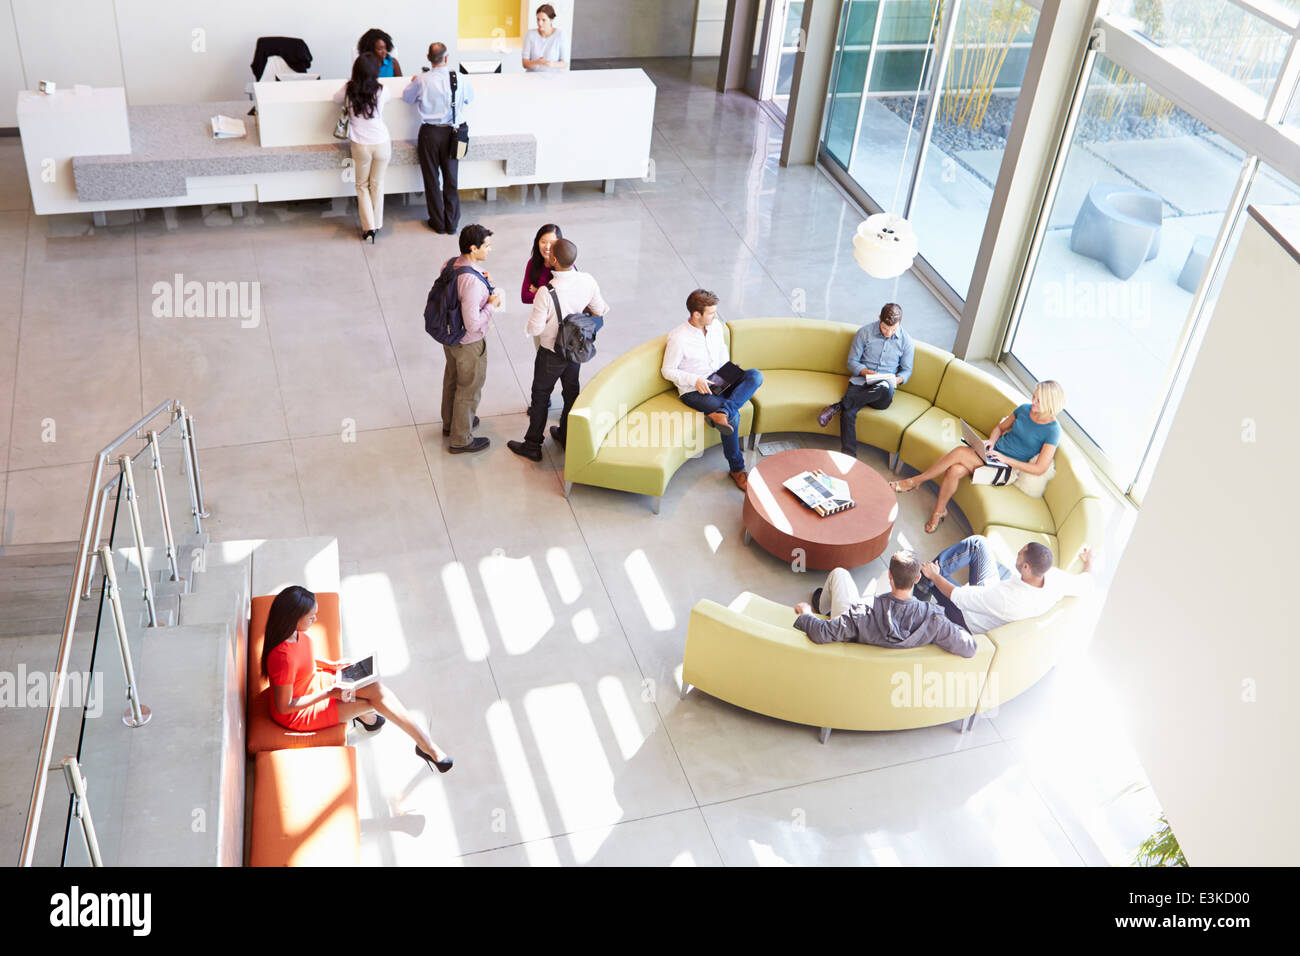 Reception Area Of Modern Office Building With People - Stock Image